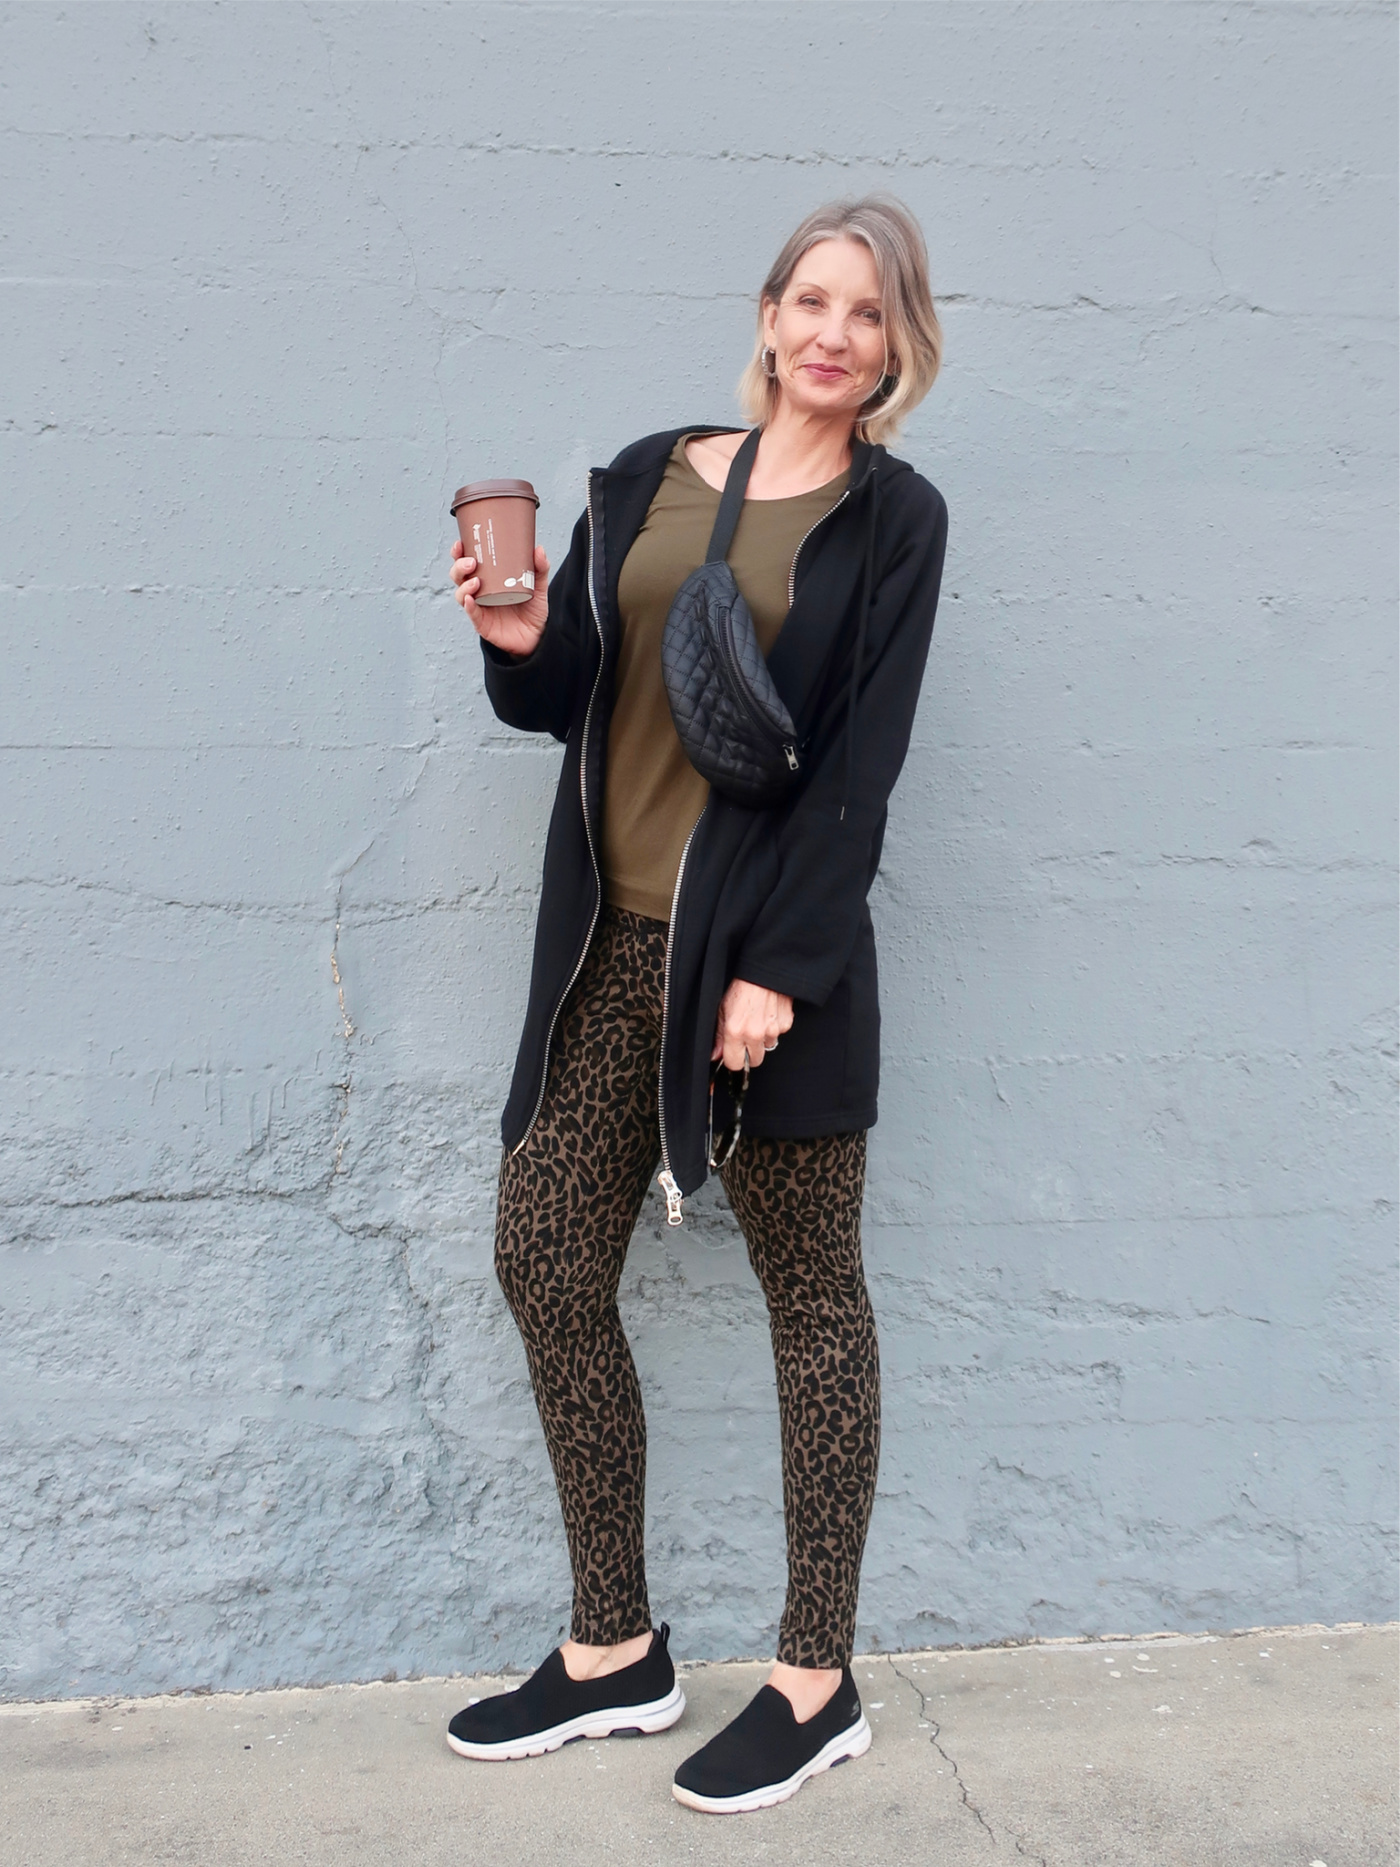 athleisure for women over 40